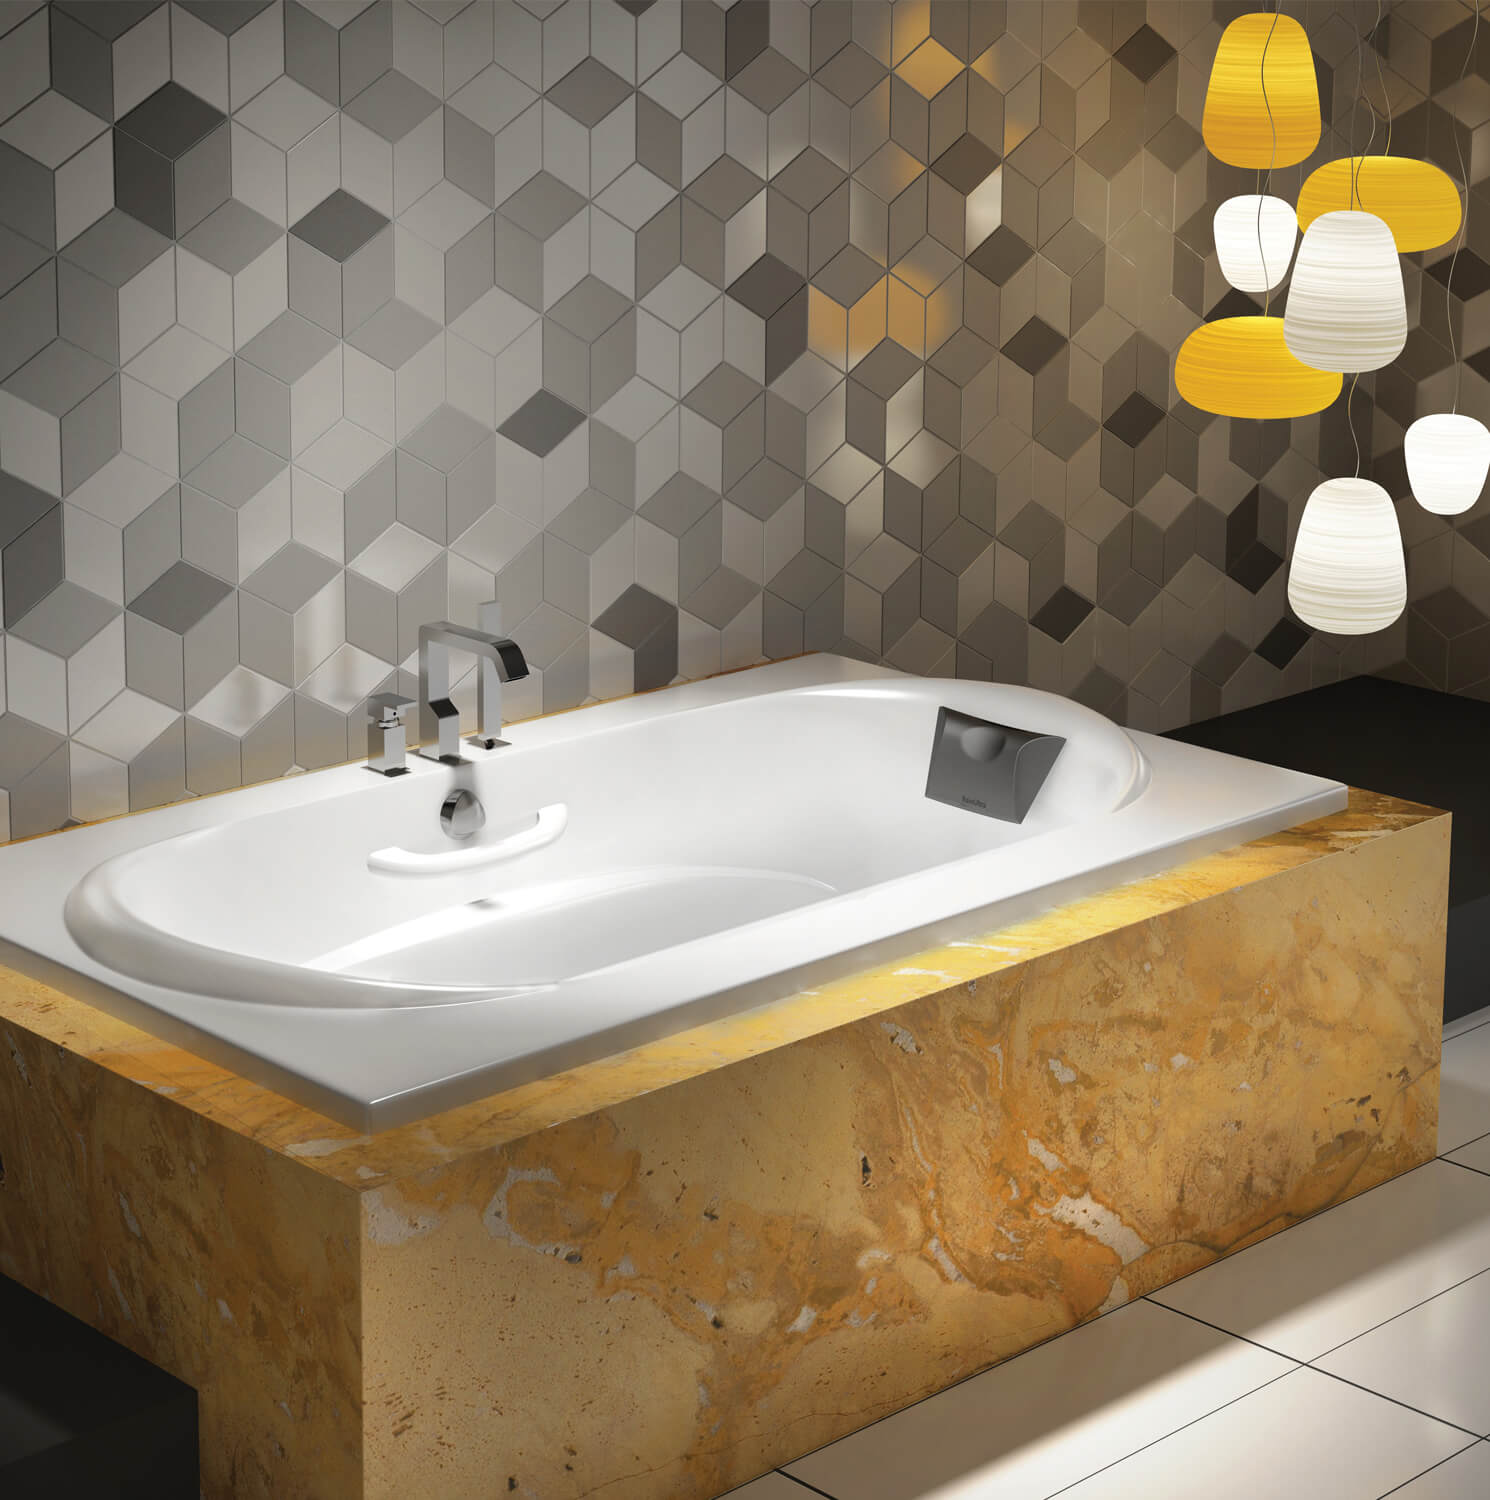 Alcove drop-in air jet tub for your bathroom | BainUltra Amma® 7236